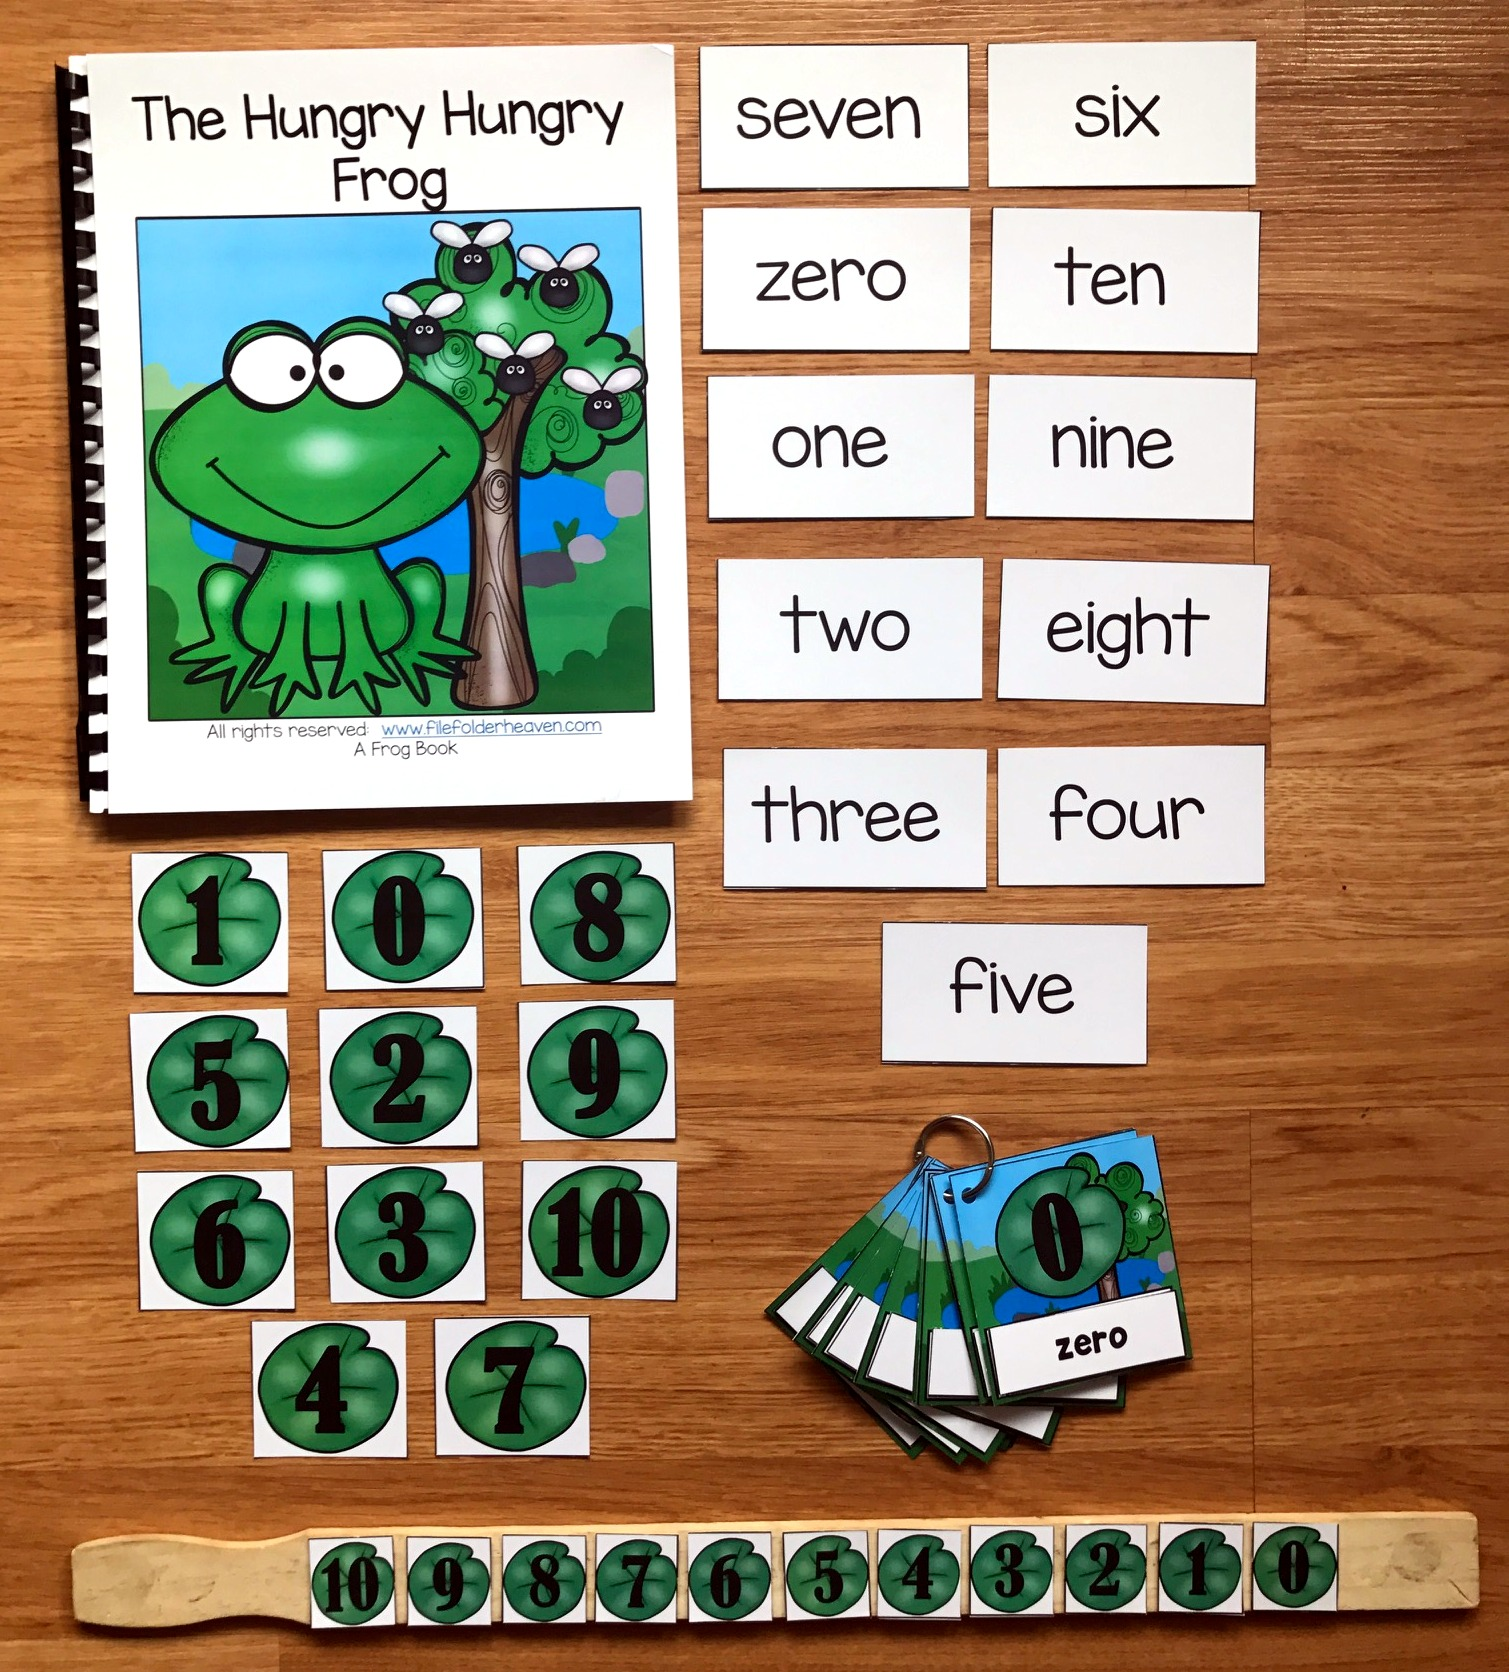 The Hungry Hungry Frog Adapted Book and Vocabulary Activities